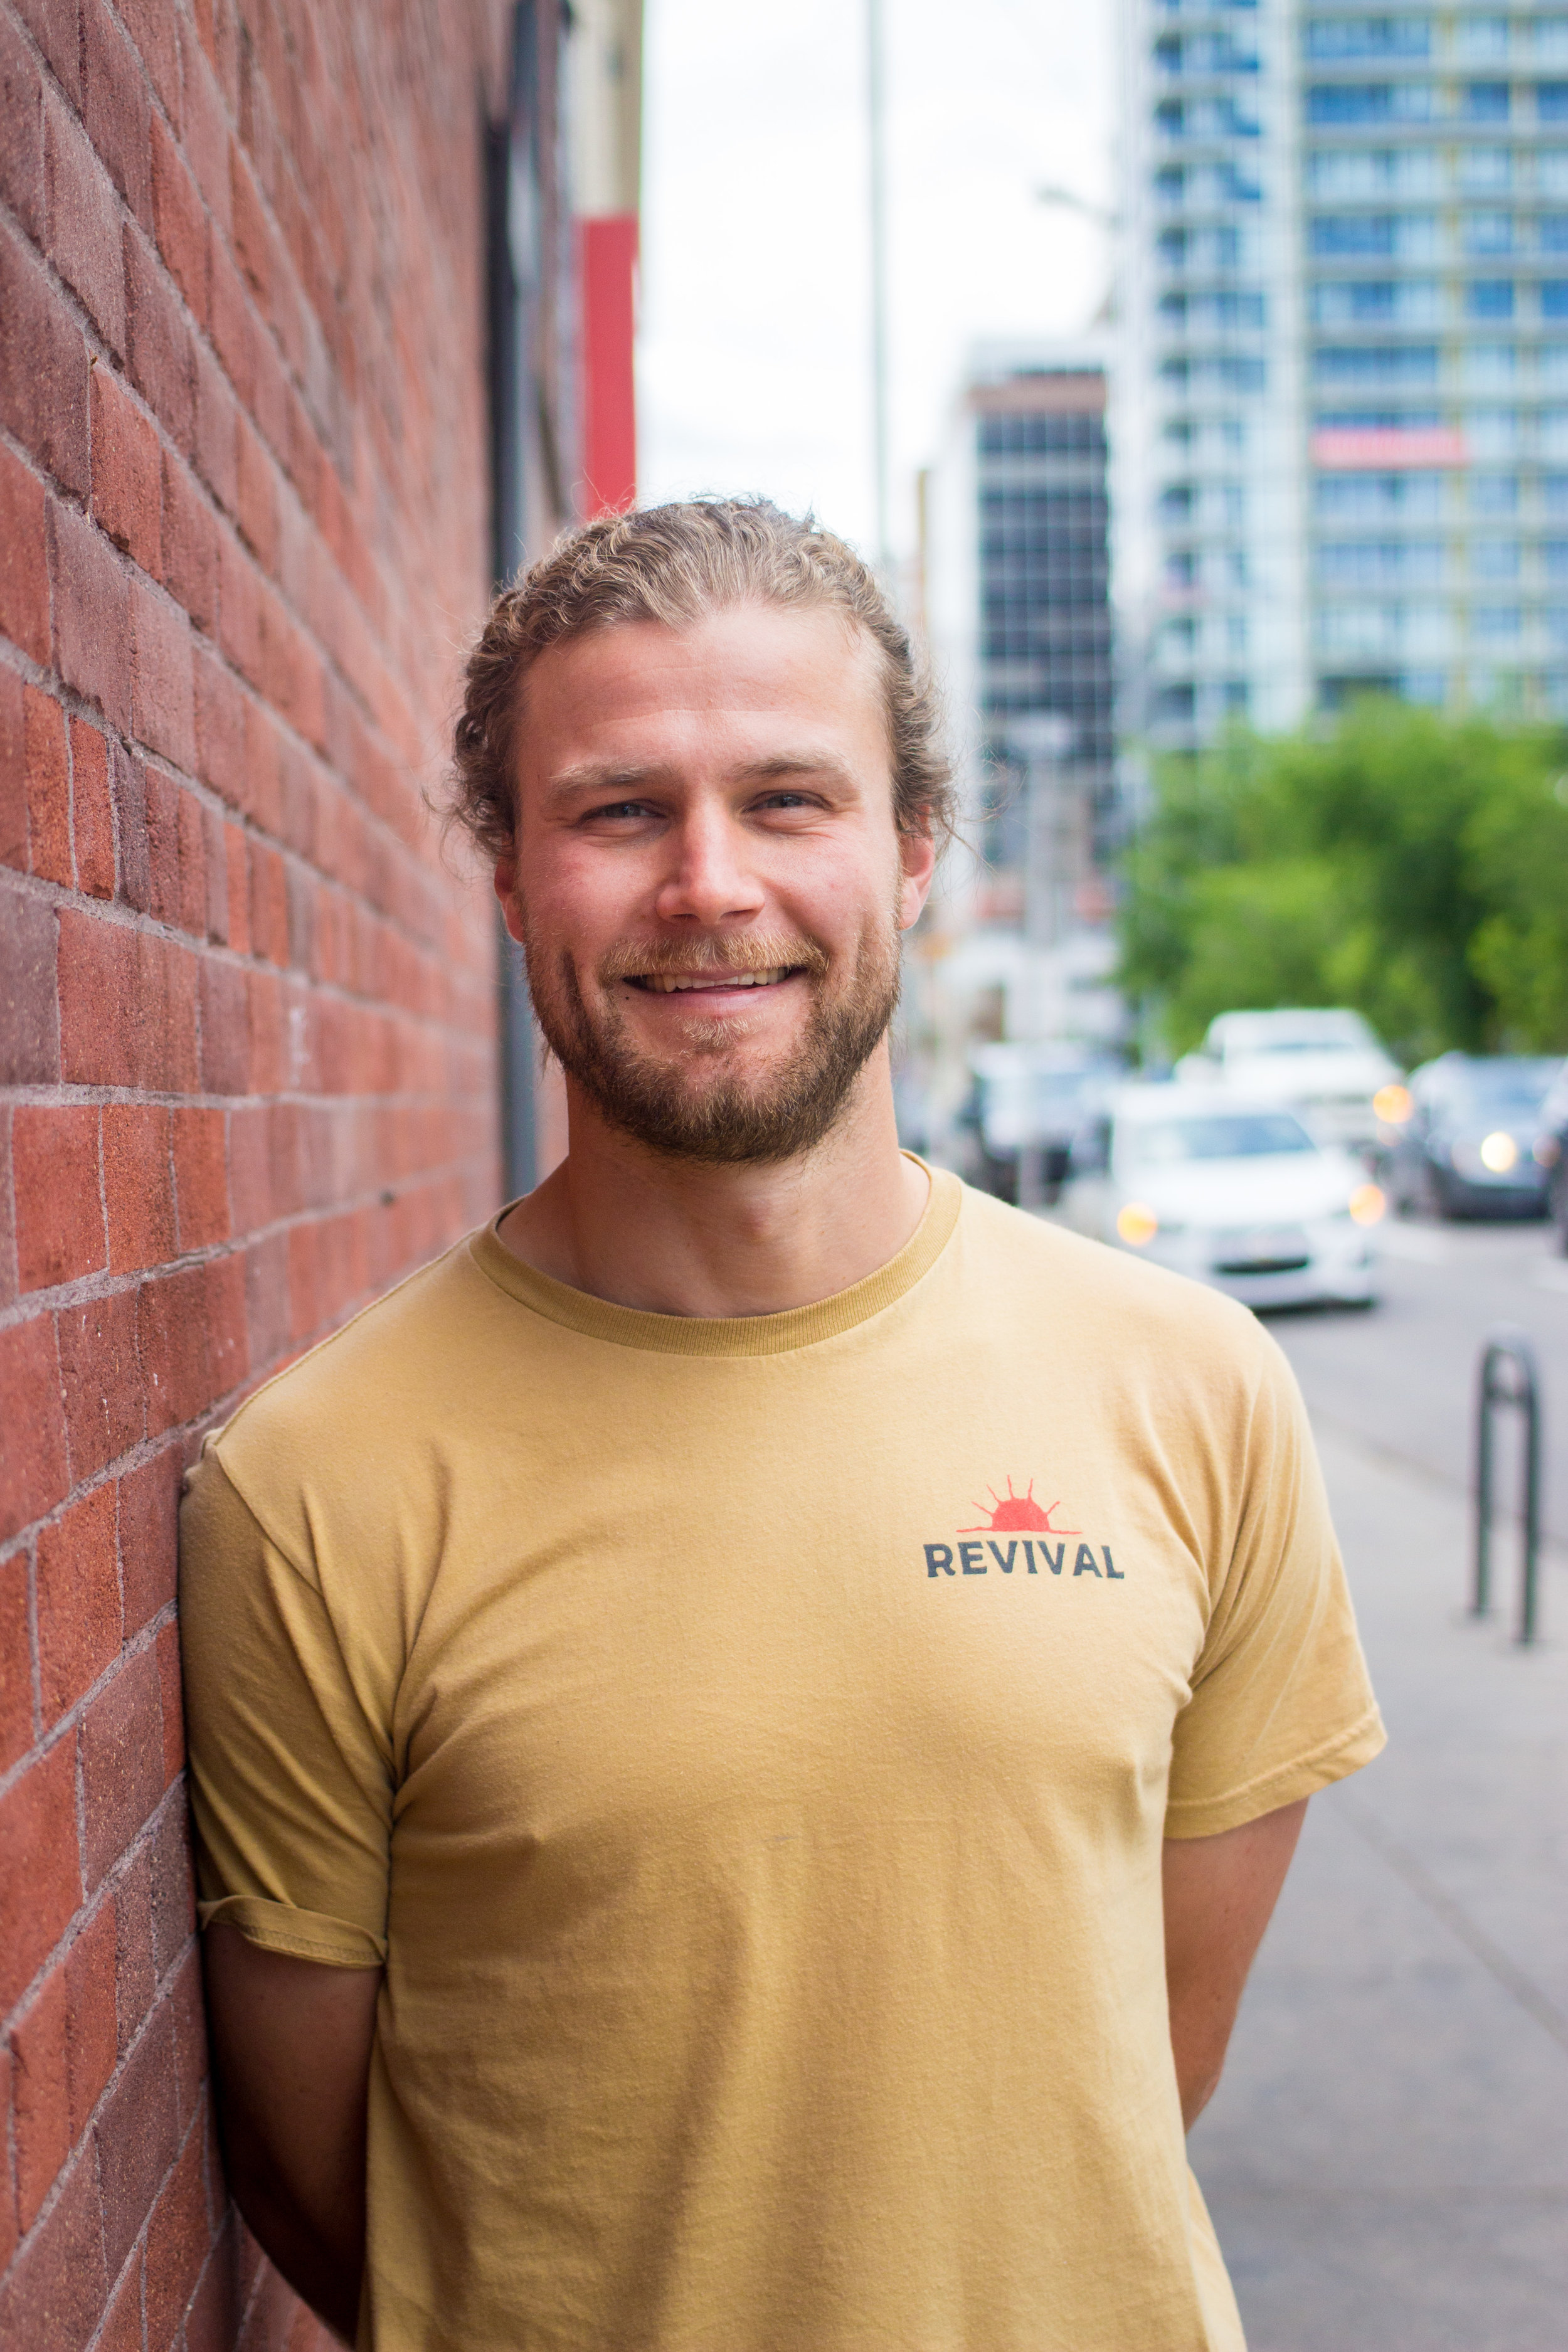 Dave Sauvé has been the Regional Manager of  Leopold's Tavern  in Victoria Park since its arrival to the community in 2017. He oversaw the first out-of-province venture for the restaurant, which was founded in 2013 out of Regina, SK. In Leopold's Tavern, Dave helps curate amazing eats, exceptional craft beer, and outrageously good times.  As a passionate cannabis consumer, Dave applies his skillset to curate sophisticated ancillary cannabis products and creating thoughtful low-dose cannabis-infused edibles and drinkables.  Connect with Dave on Instagram:  @dricosauve